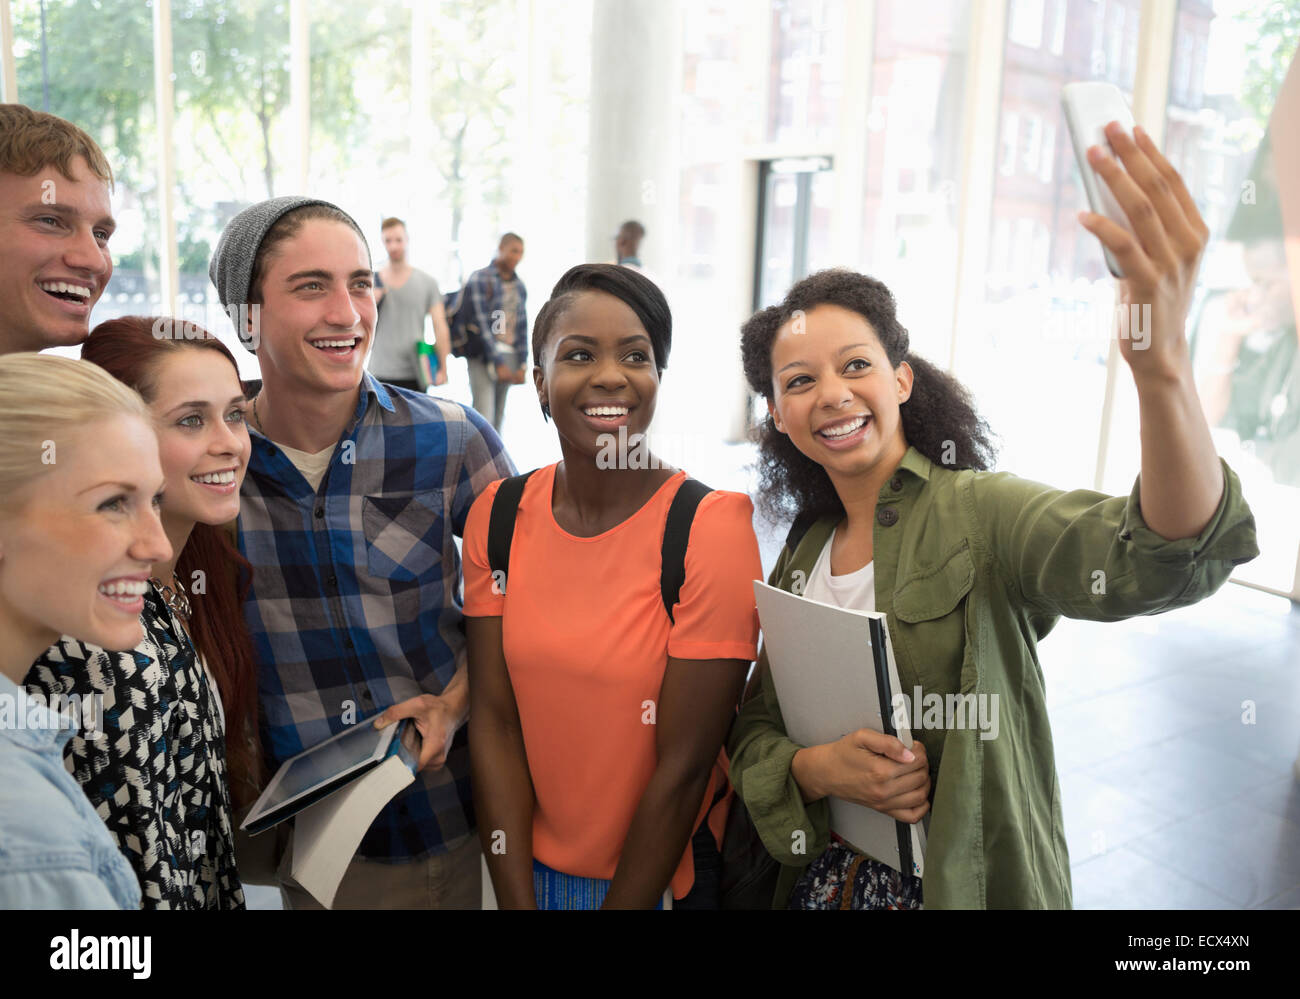 Group of smiling students holding books and digital tablet, taking selfie with smart phone Stock Photo